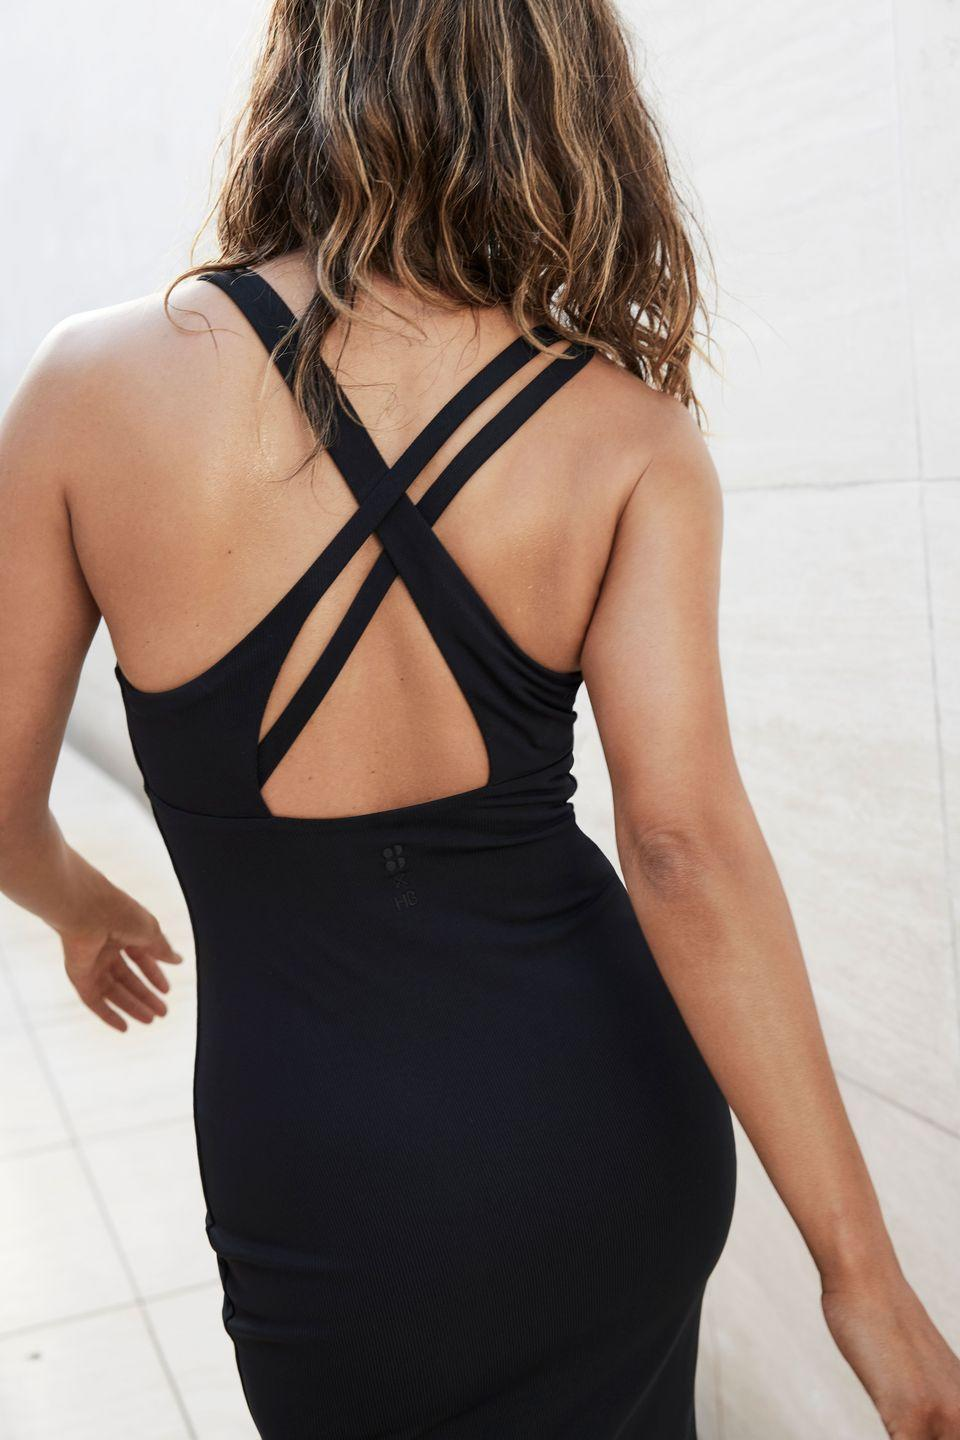 """<p>This slinky midi dress is the perfect dress to throw on after a sweaty cardio session. The stretch jersey fabric means you can roll it up in your gym bag and it will emerge crease-free for a pulled together look post-class. The strappy criss-cross back makes it a summer winner.</p><p><strong>How much? </strong>£120</p><p><a class=""""link rapid-noclick-resp"""" href=""""https://go.redirectingat.com?id=127X1599956&url=https%3A%2F%2Fwww.sweatybetty.com%2Fhalle-berry%2Fhalle-berry-edit%2Femily-strappy-back-dress-SB6911_Black.html%3Fdwvar_SB6911__Black_color%3Dblack%26cgid%3Dhalle-berry-edit%26tile%3D6.0%23start%3D6&sref=https%3A%2F%2Fwww.redonline.co.uk%2Ffashion%2Ffashion-news%2Fg36470632%2Fsweaty-betty-halle-berry%2F"""" rel=""""nofollow noopener"""" target=""""_blank"""" data-ylk=""""slk:SHOP NOW"""">SHOP NOW</a></p>"""